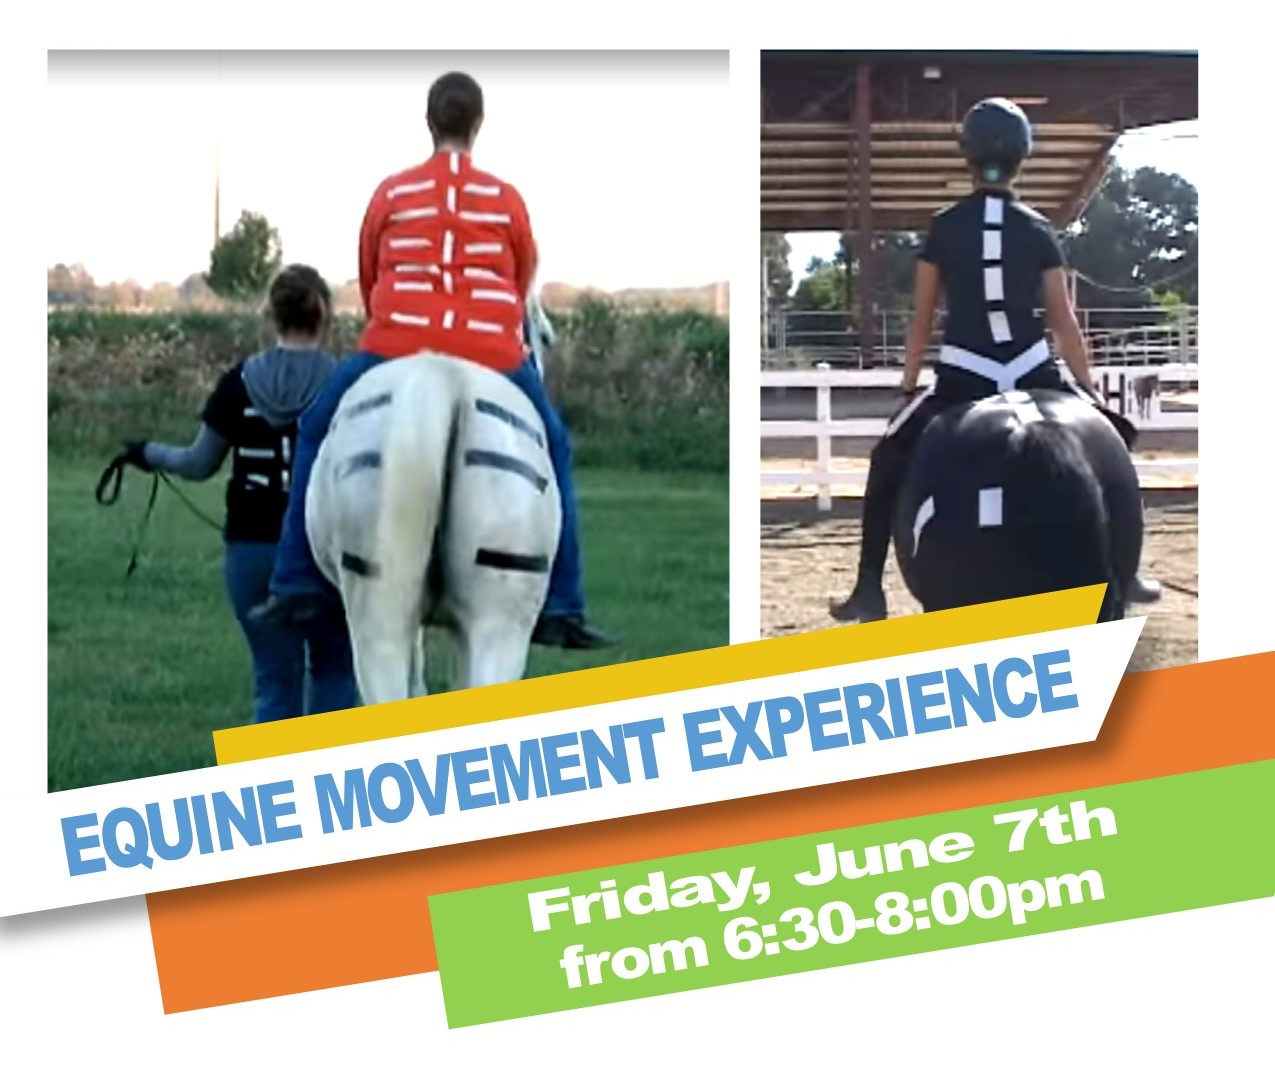 Equine Movement Experience -image.jpg